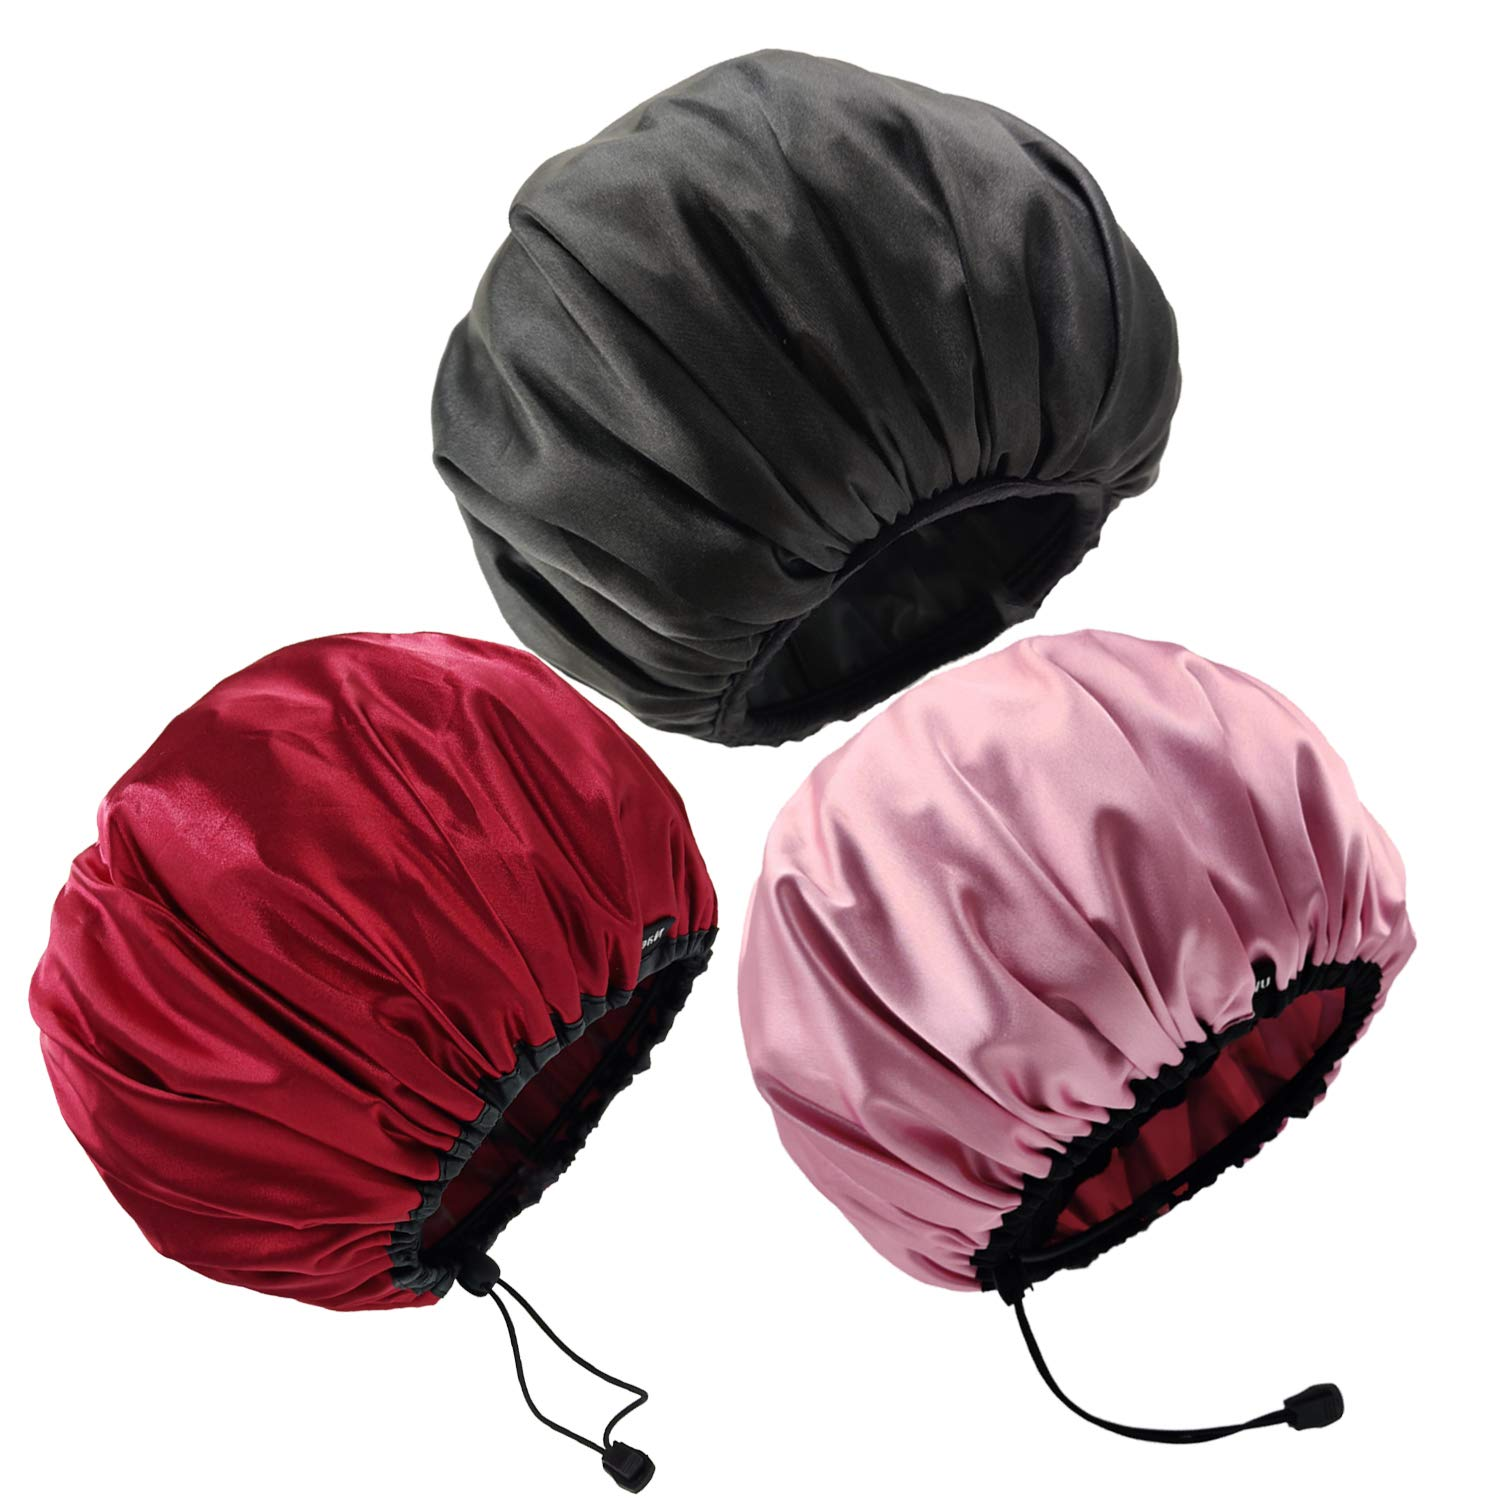 Extra Large Shower Caps For Women Adjustable Satin Bonnets Waterproof Plastic Xl For curly Long Hair Black Pink Burgundy